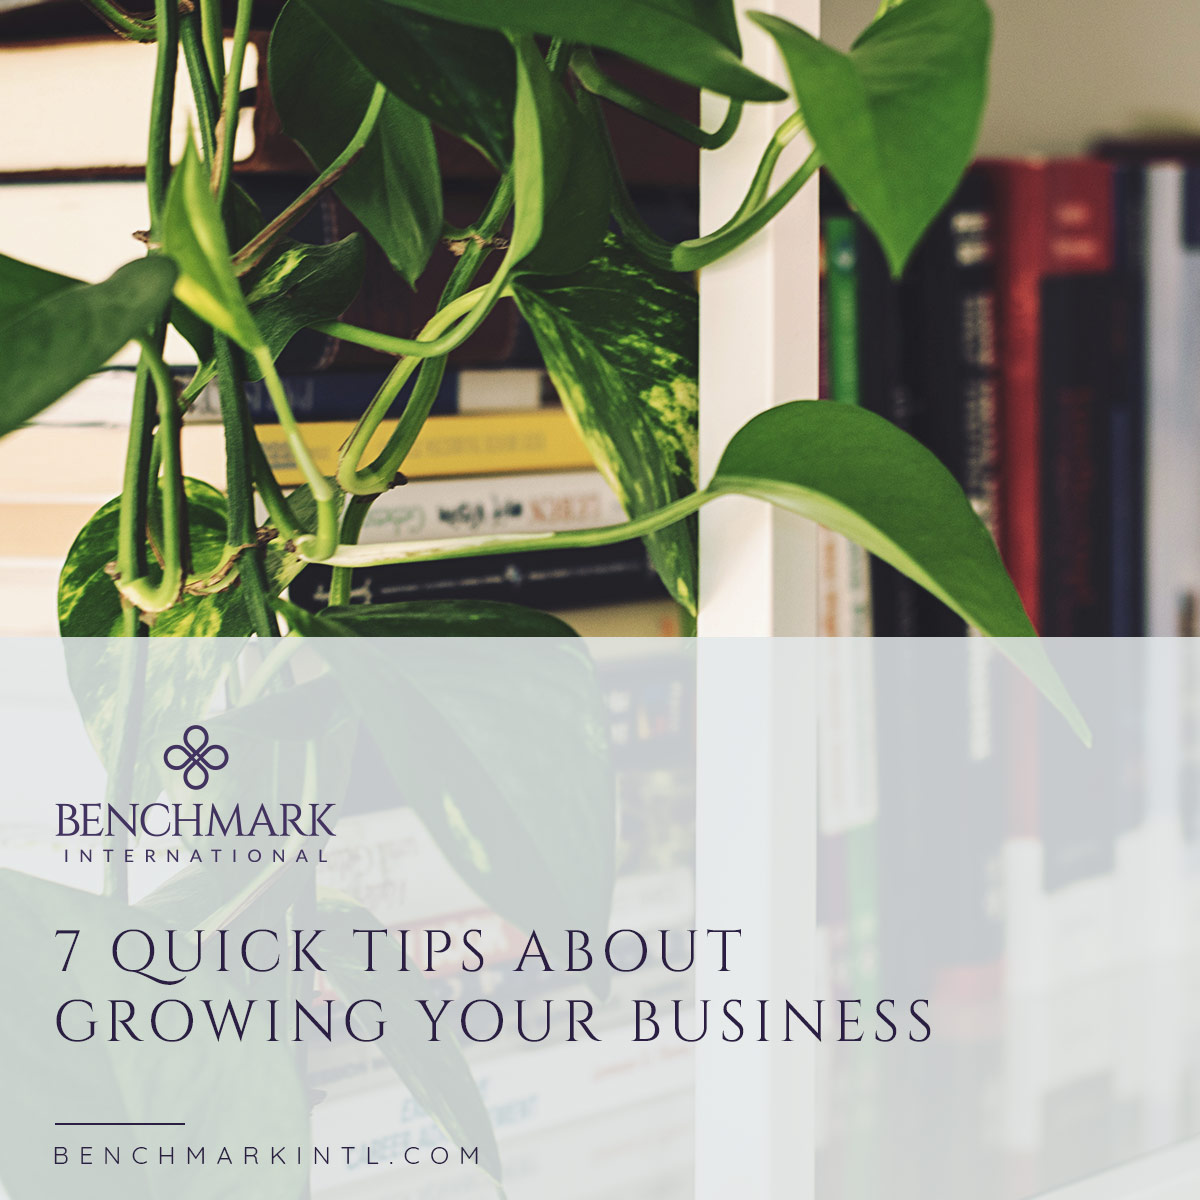 7 Quick Tips About Growing Your Business